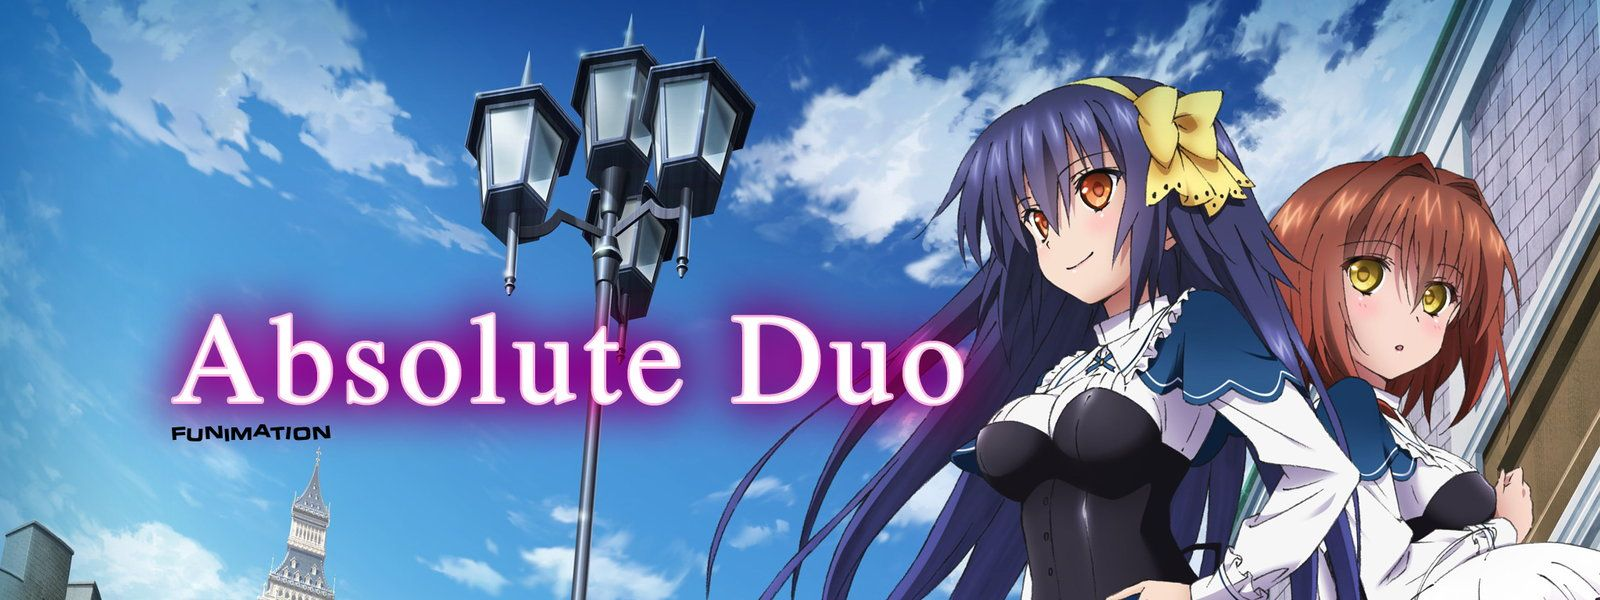 Absolute Duo Absolute duo, Duo, Anime